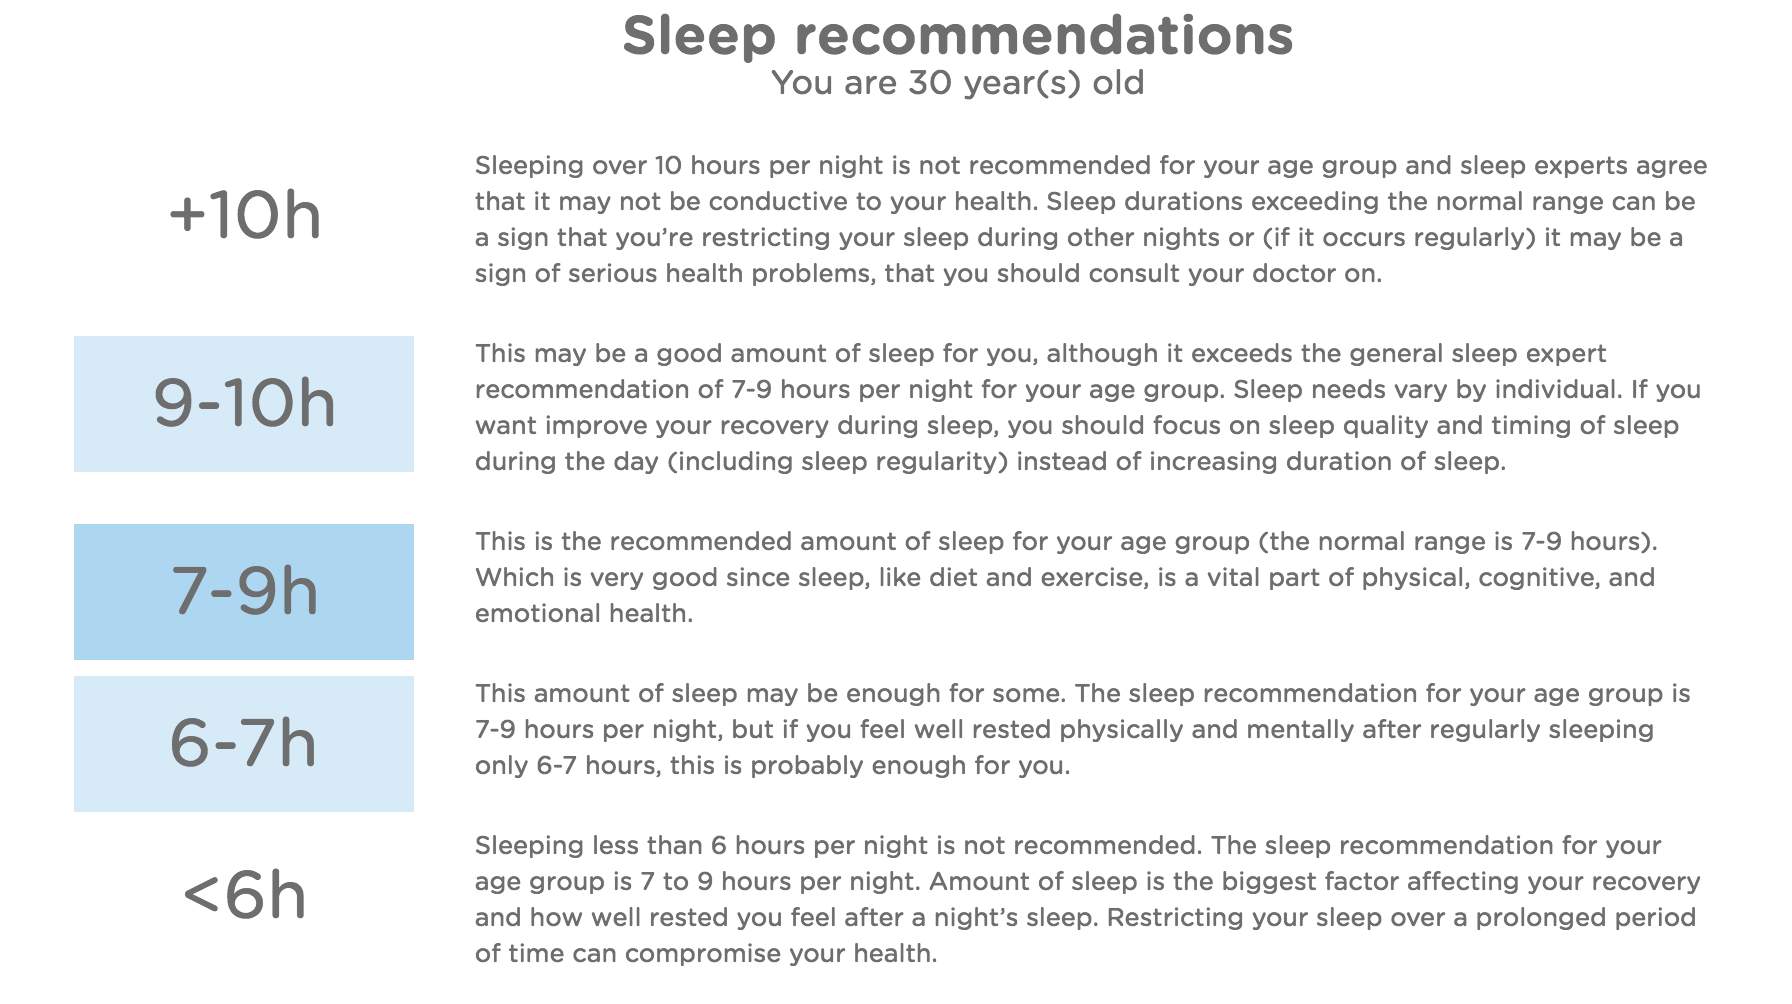 Beddit Sleep Recommendations